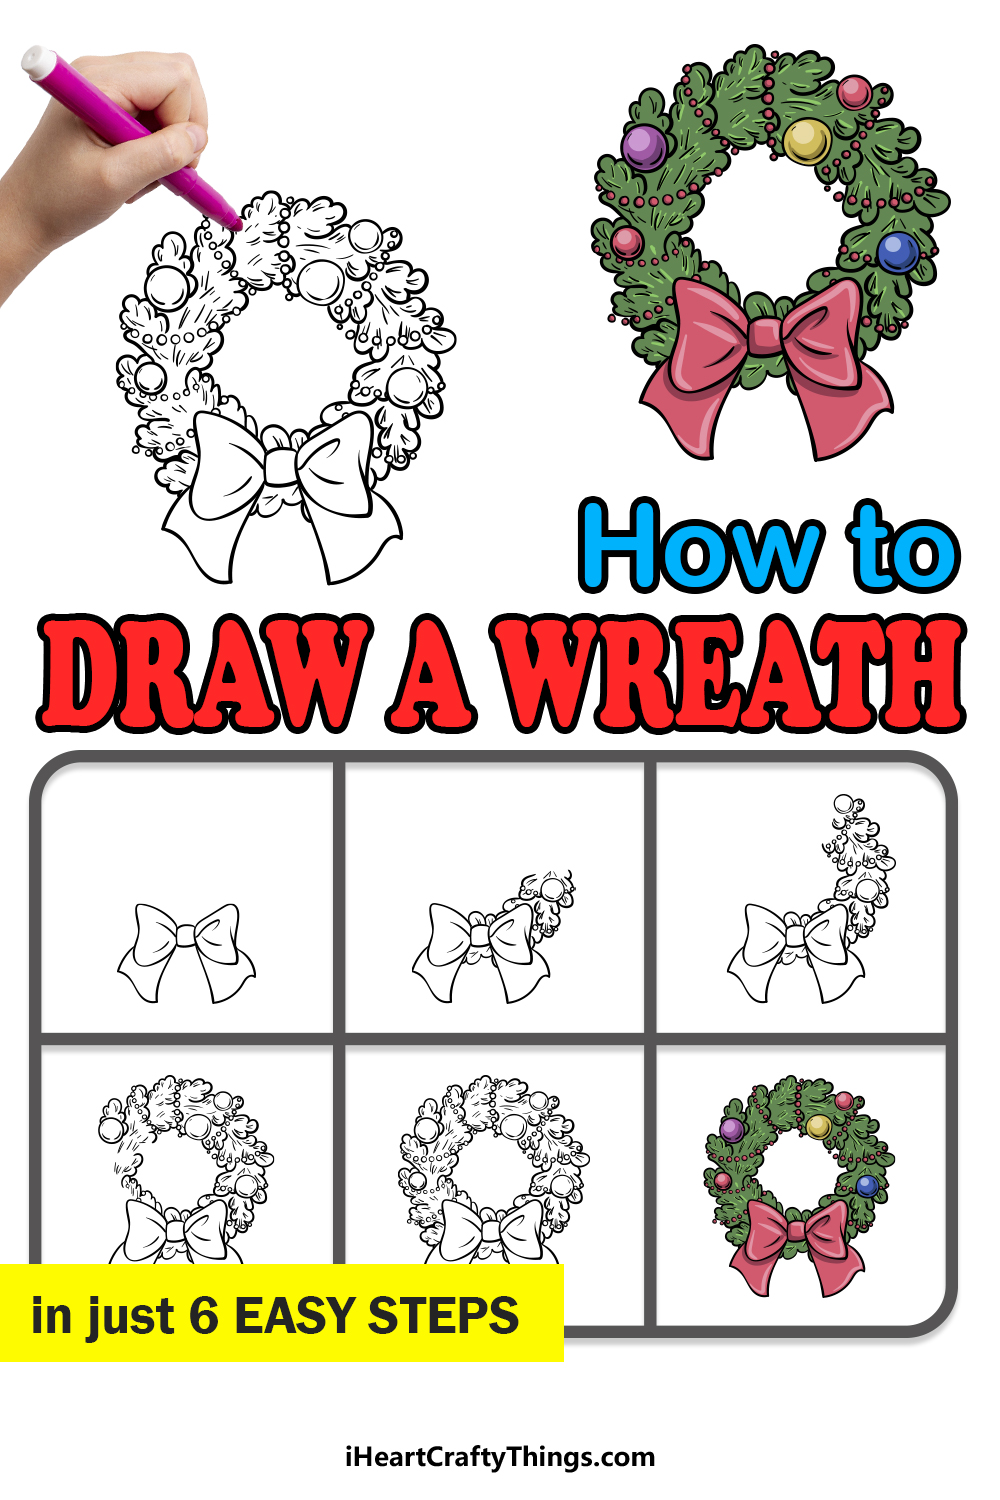 how to draw a wreath in 6 easy steps